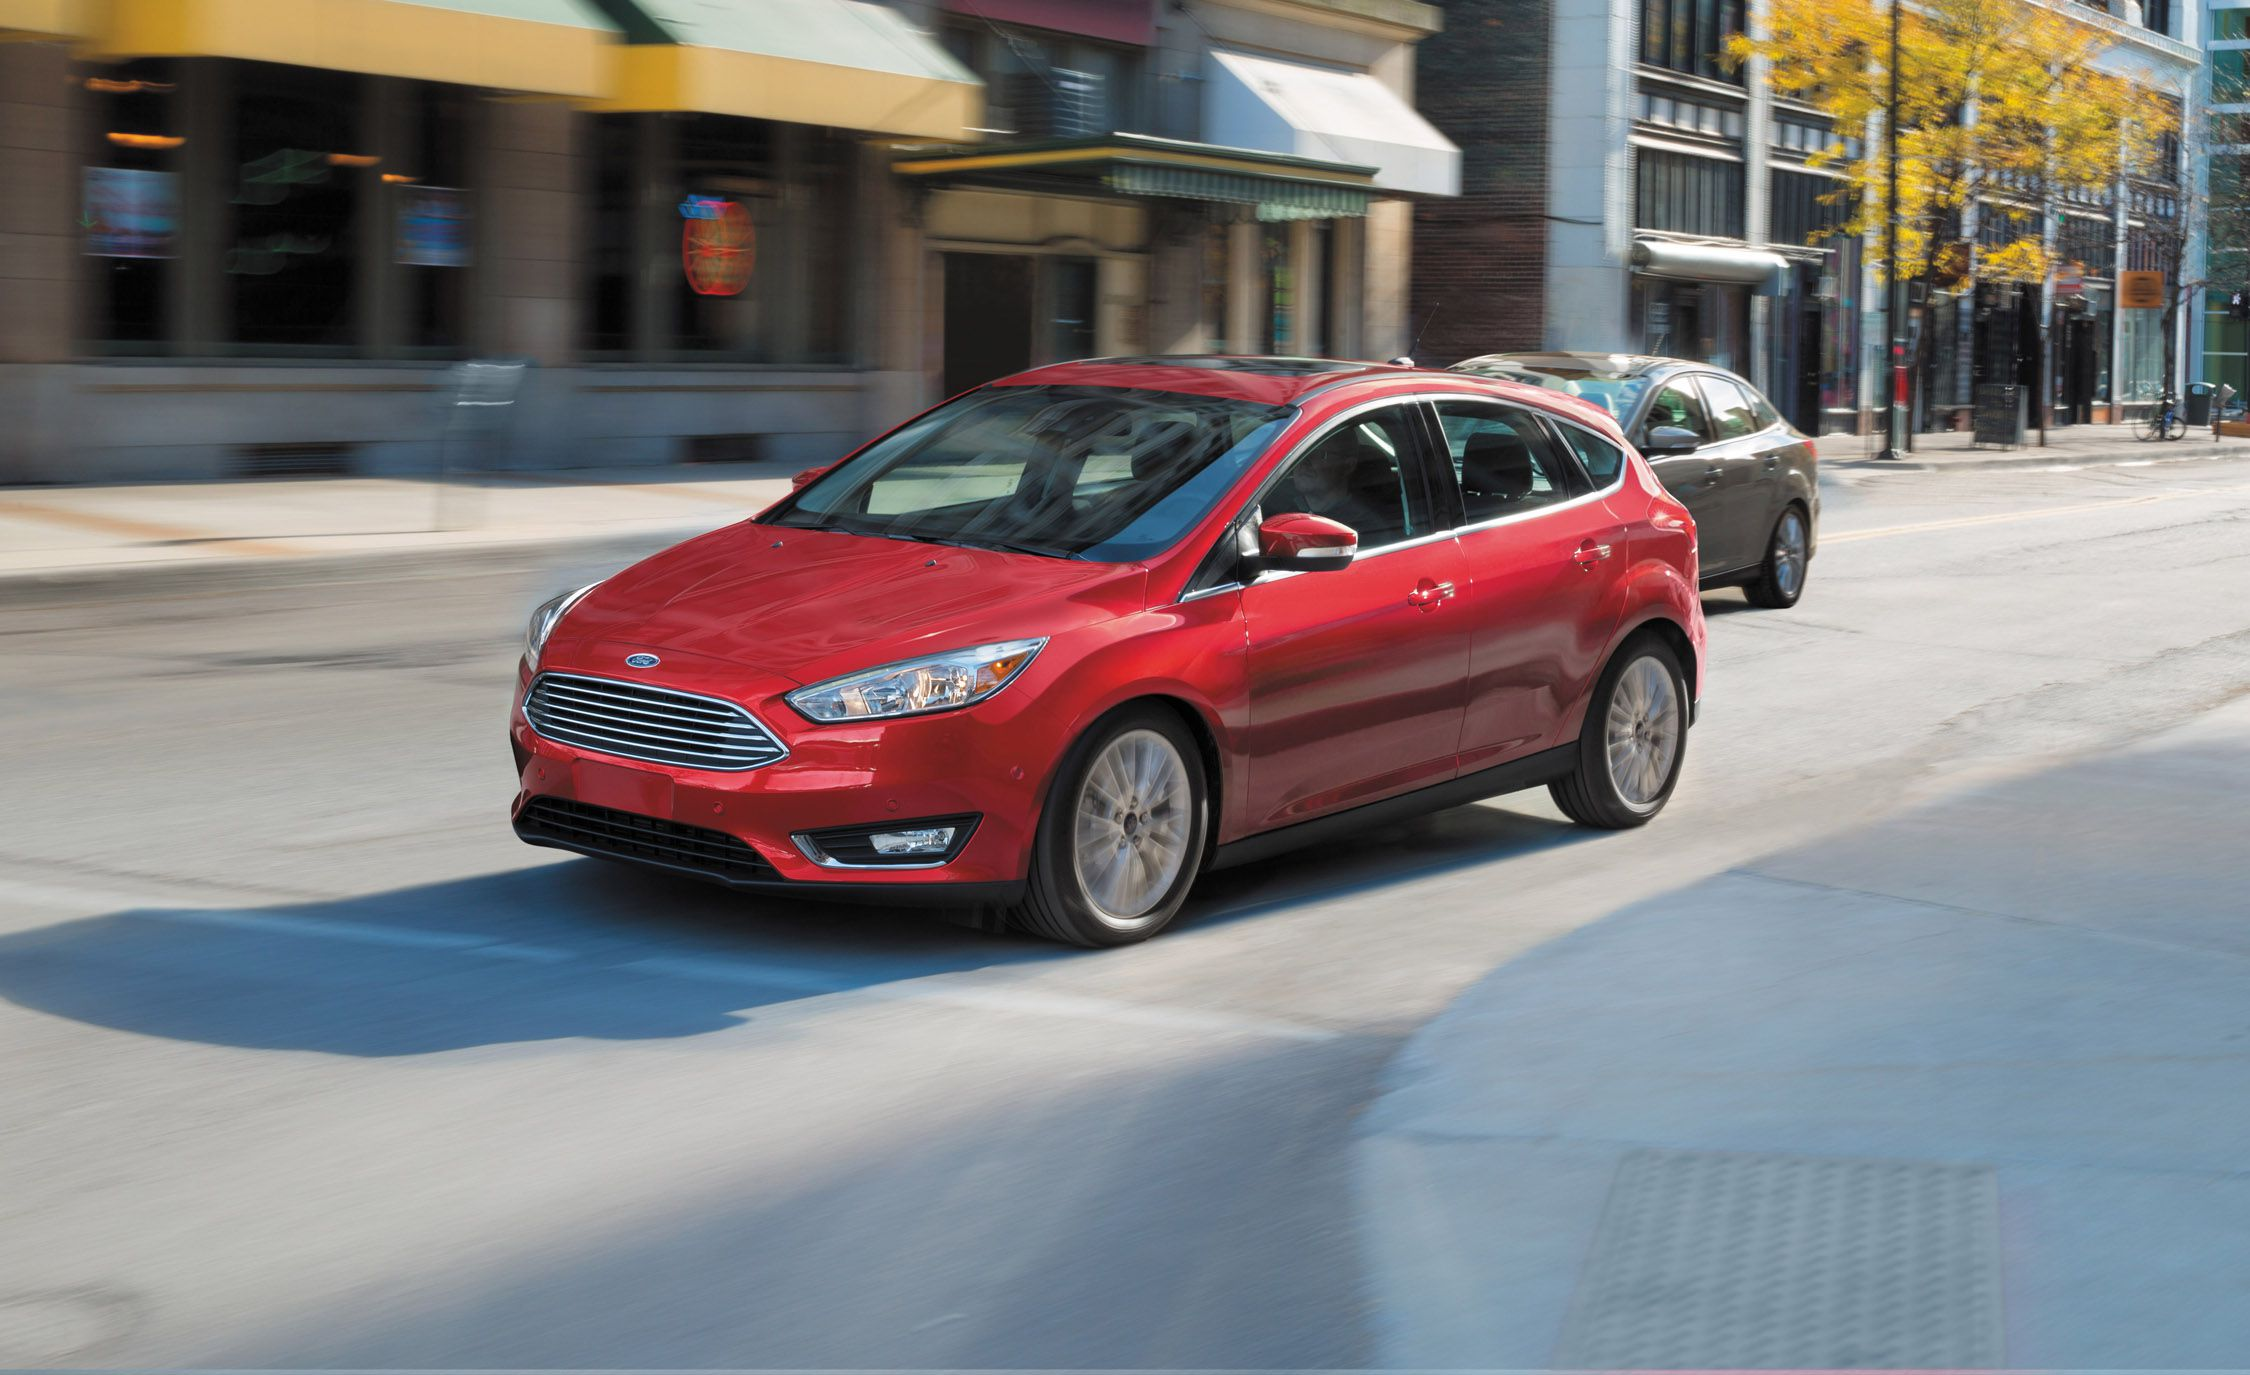 FORD RECALLING SOME OF ITS FORD FOCUS CARS